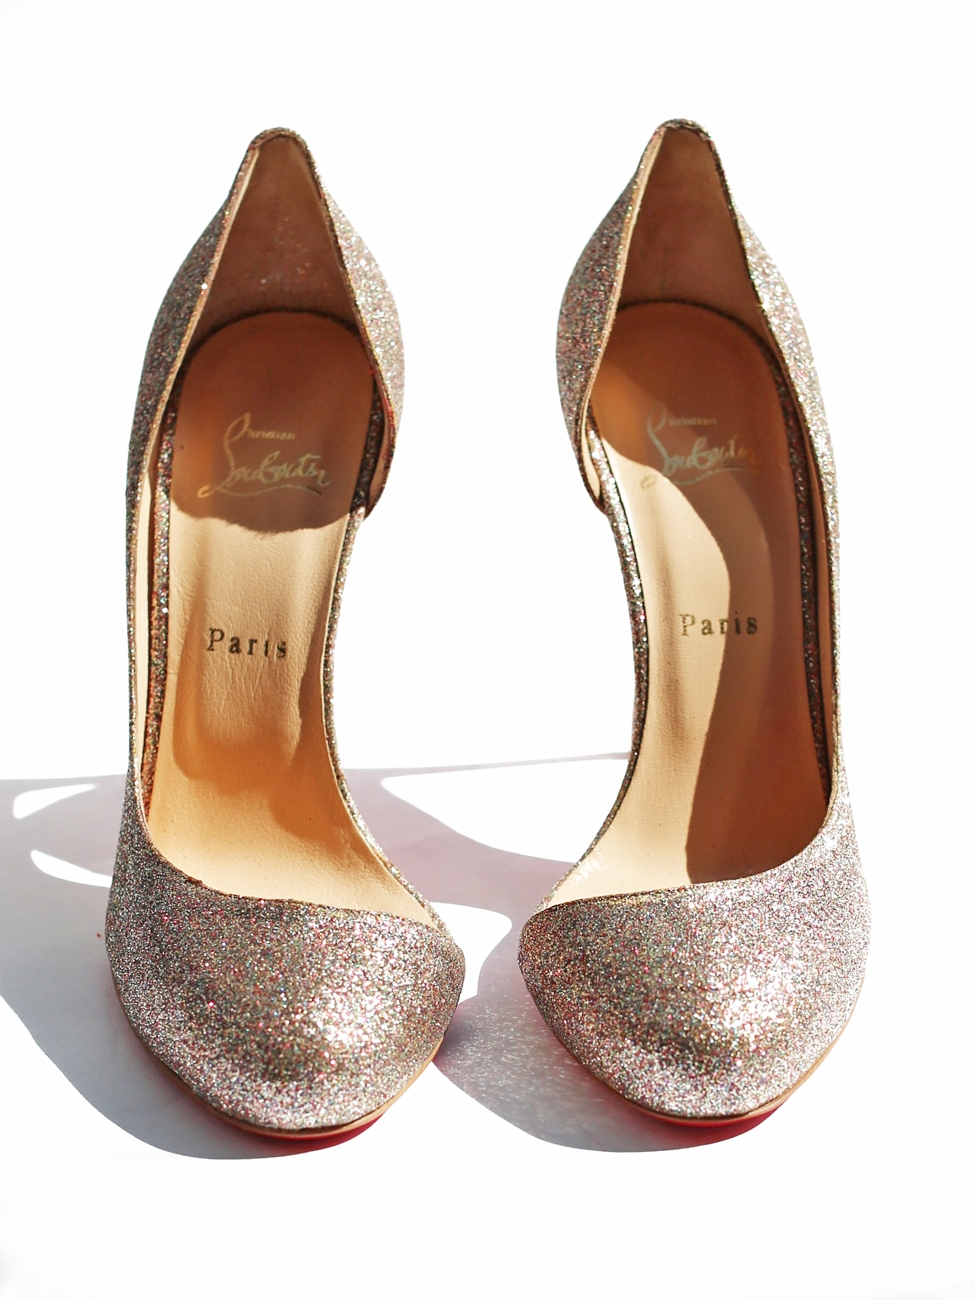 https://i1.wp.com/louiseparis.fr/9286/christian-louboutin-escarpins-stiletto-glitter-helmour-a-paillettes-multicouleur-px-boutique-450-taille-41.jpg